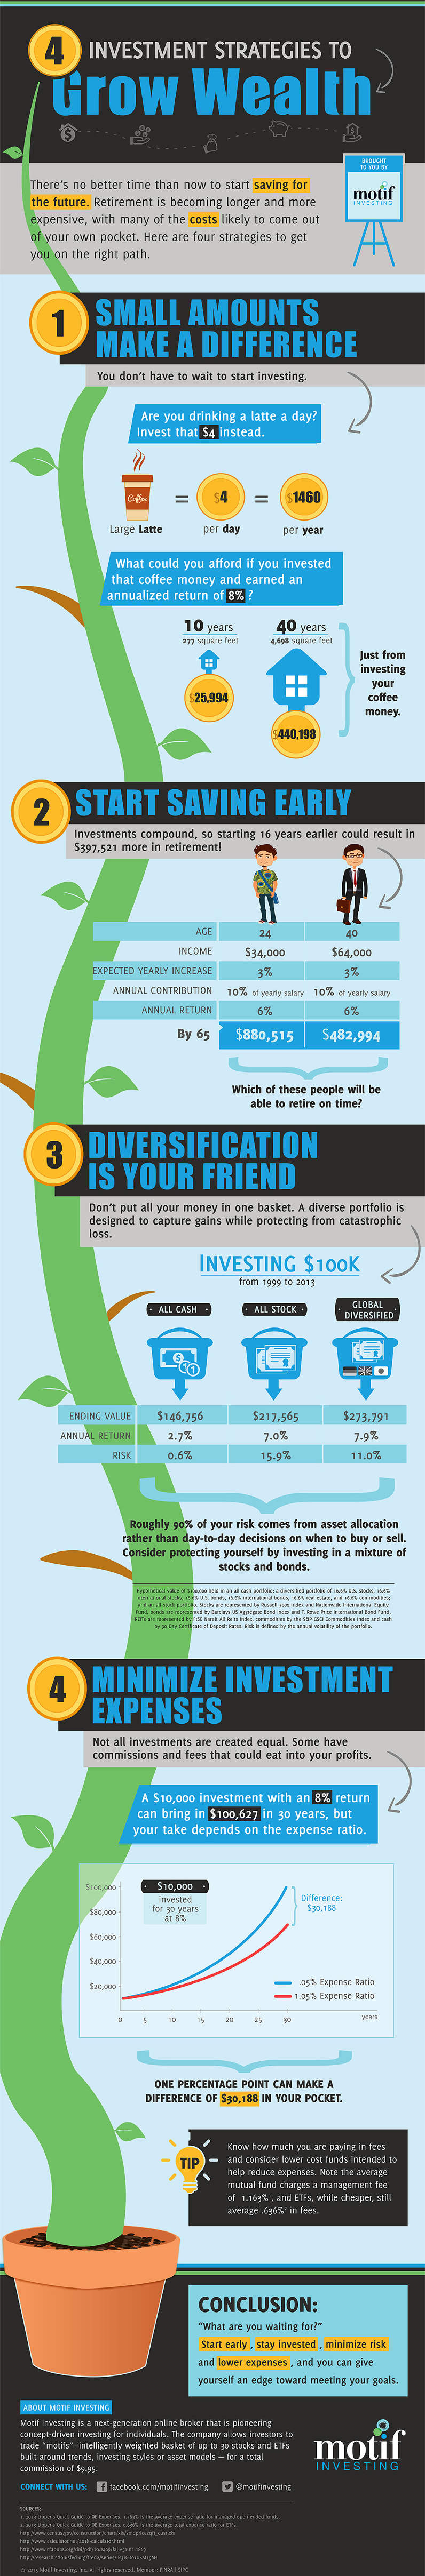 investment-strategies-to-grow-wealth